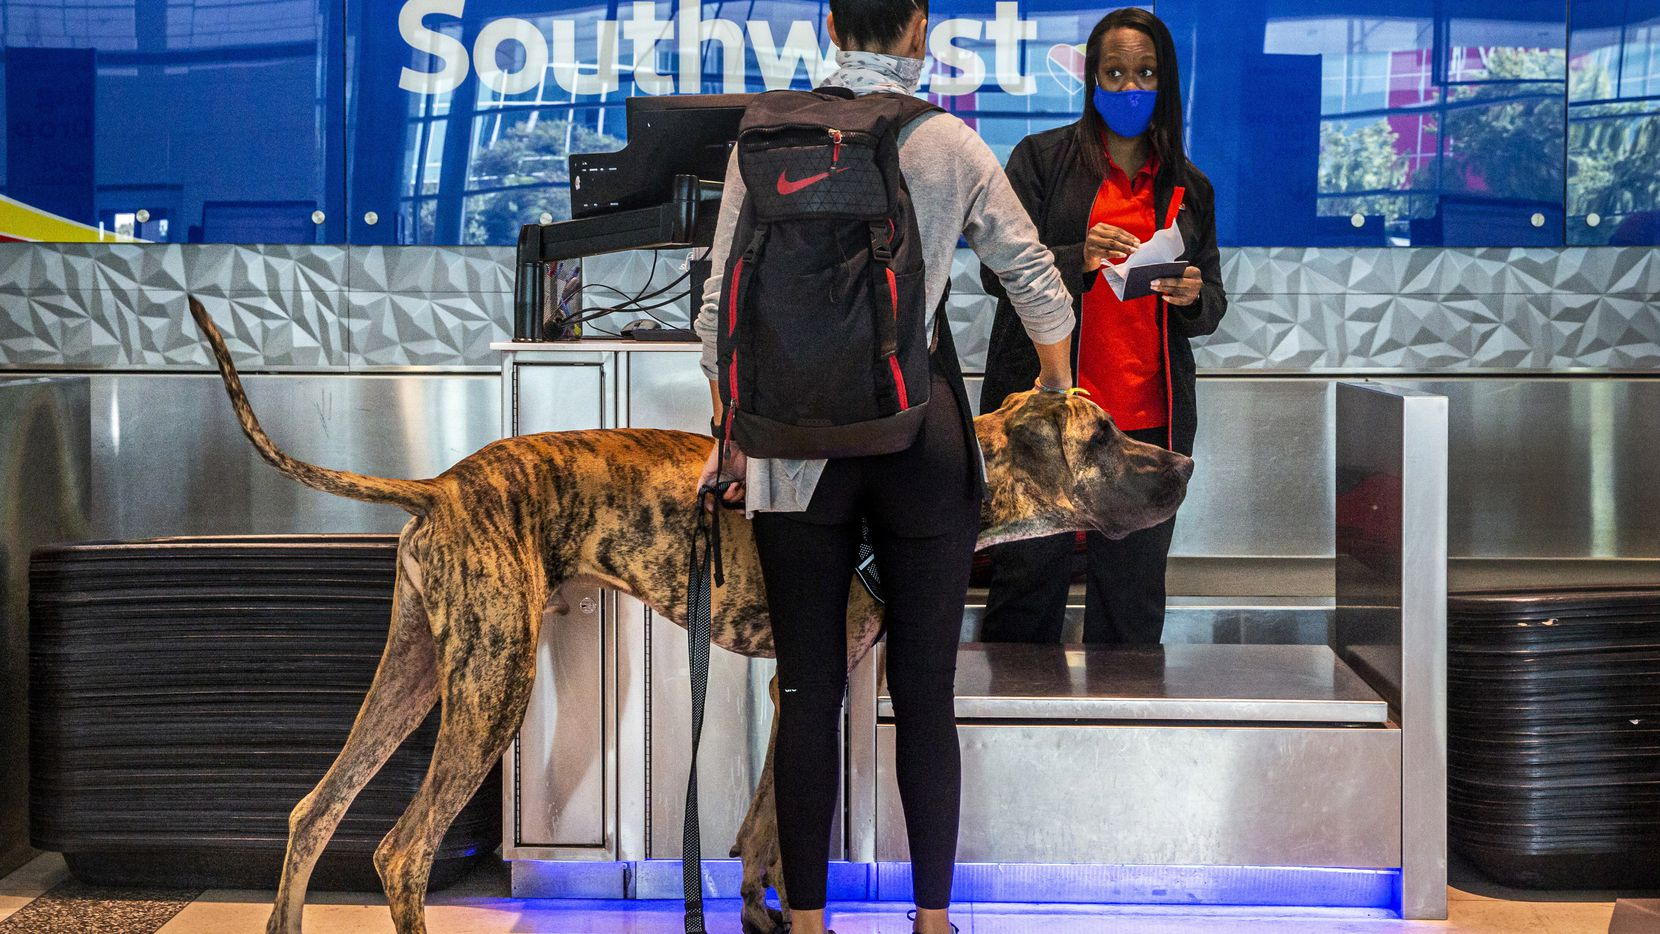 Southwest employee Ericka Thompson reacts to Jennifer Melchionne, from Houston, approaching the baggage check counter with her Great Dane, Blue, at Dallas Love Field in Dallas on Wednesday, Oct. 7, 2020.